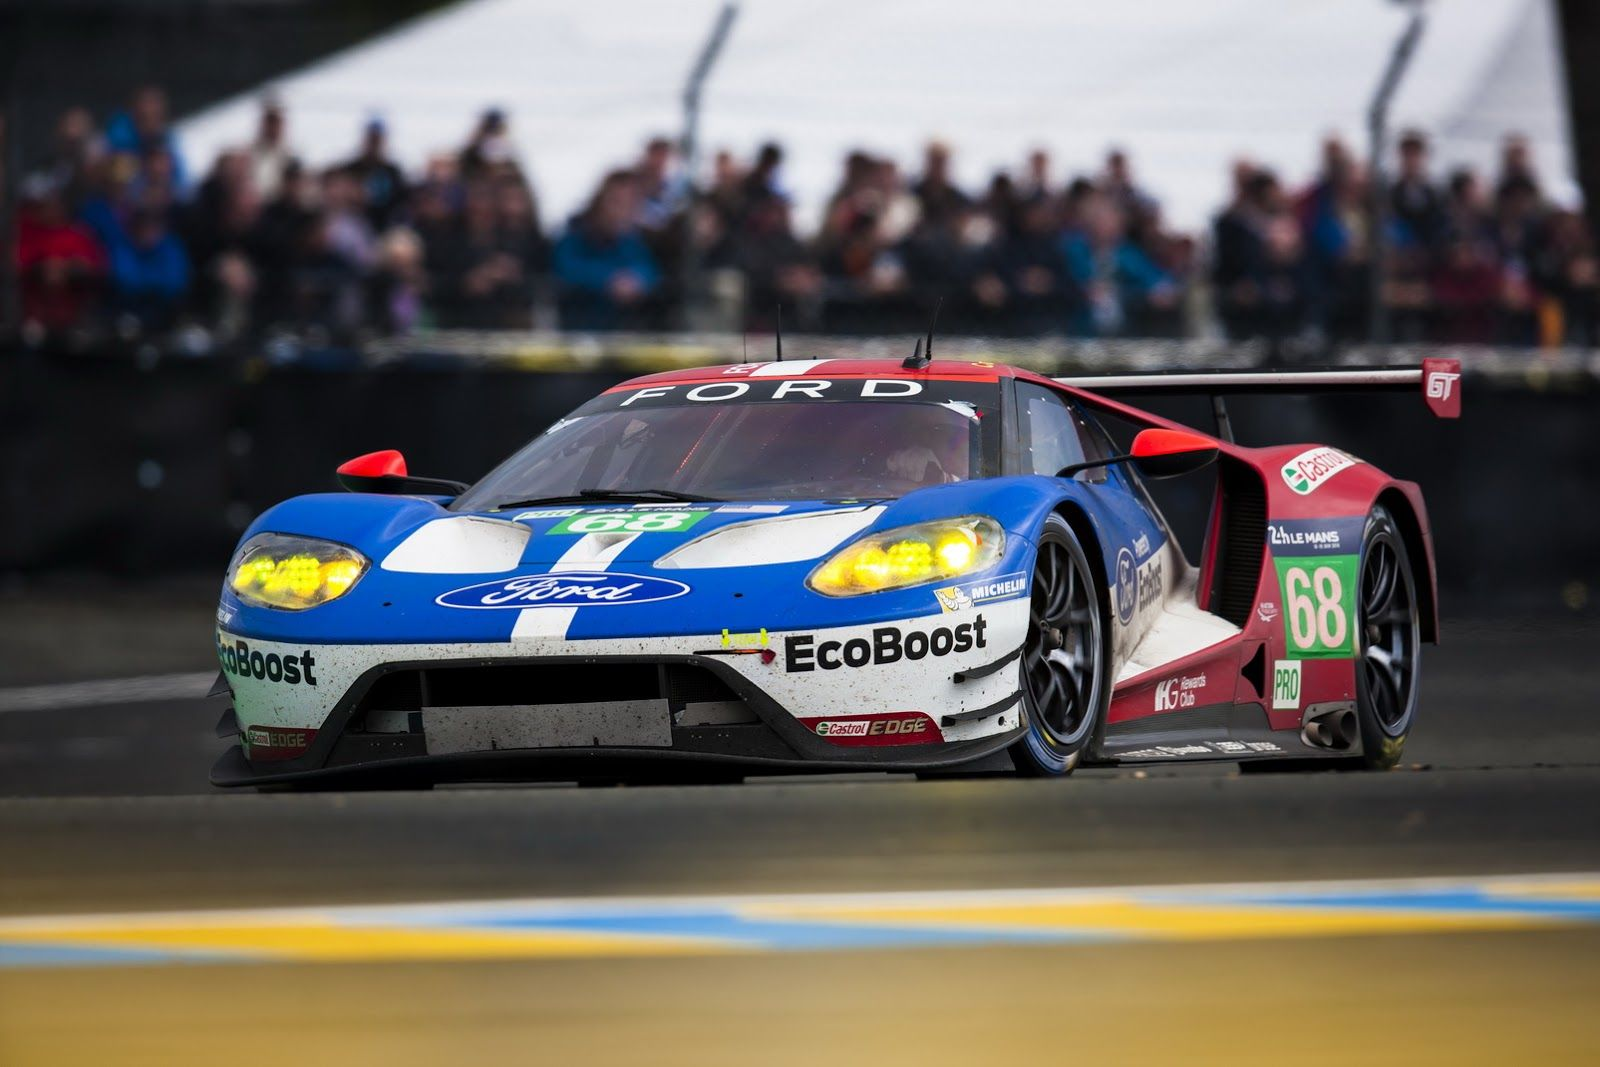 All New Ford Gt Wins Gte Pro Class In Le Mans 24h Race I Actually